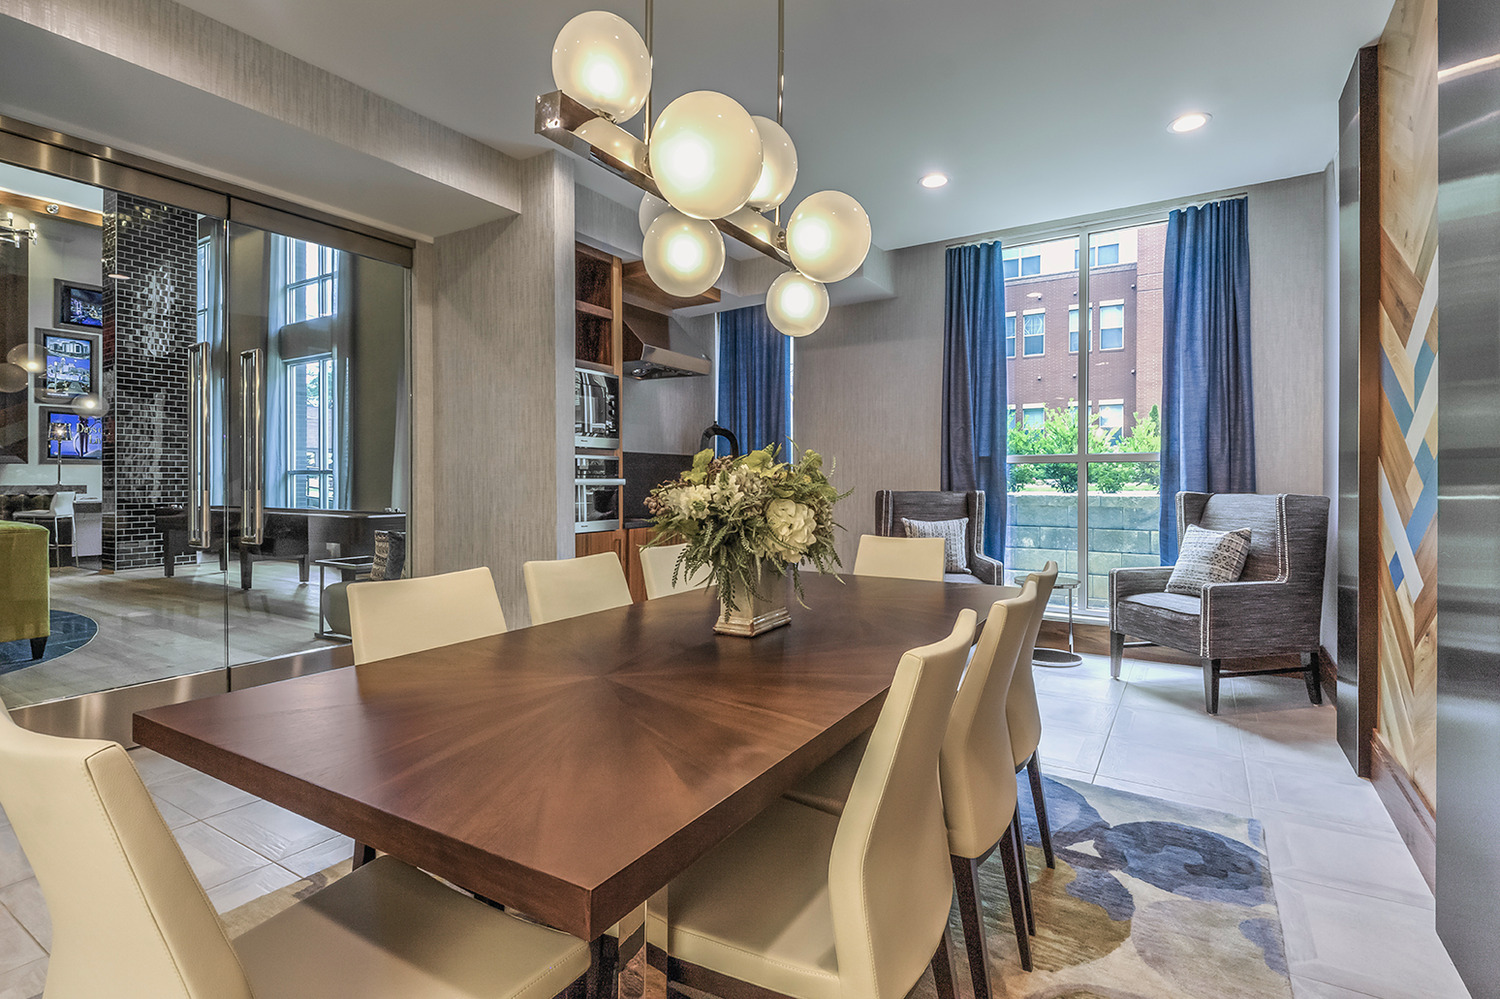 CBG builds Bainbridge South End, a 200-Unit Apartment Community with Amenities and Underground Parking in Charlotte, NC - Image #2